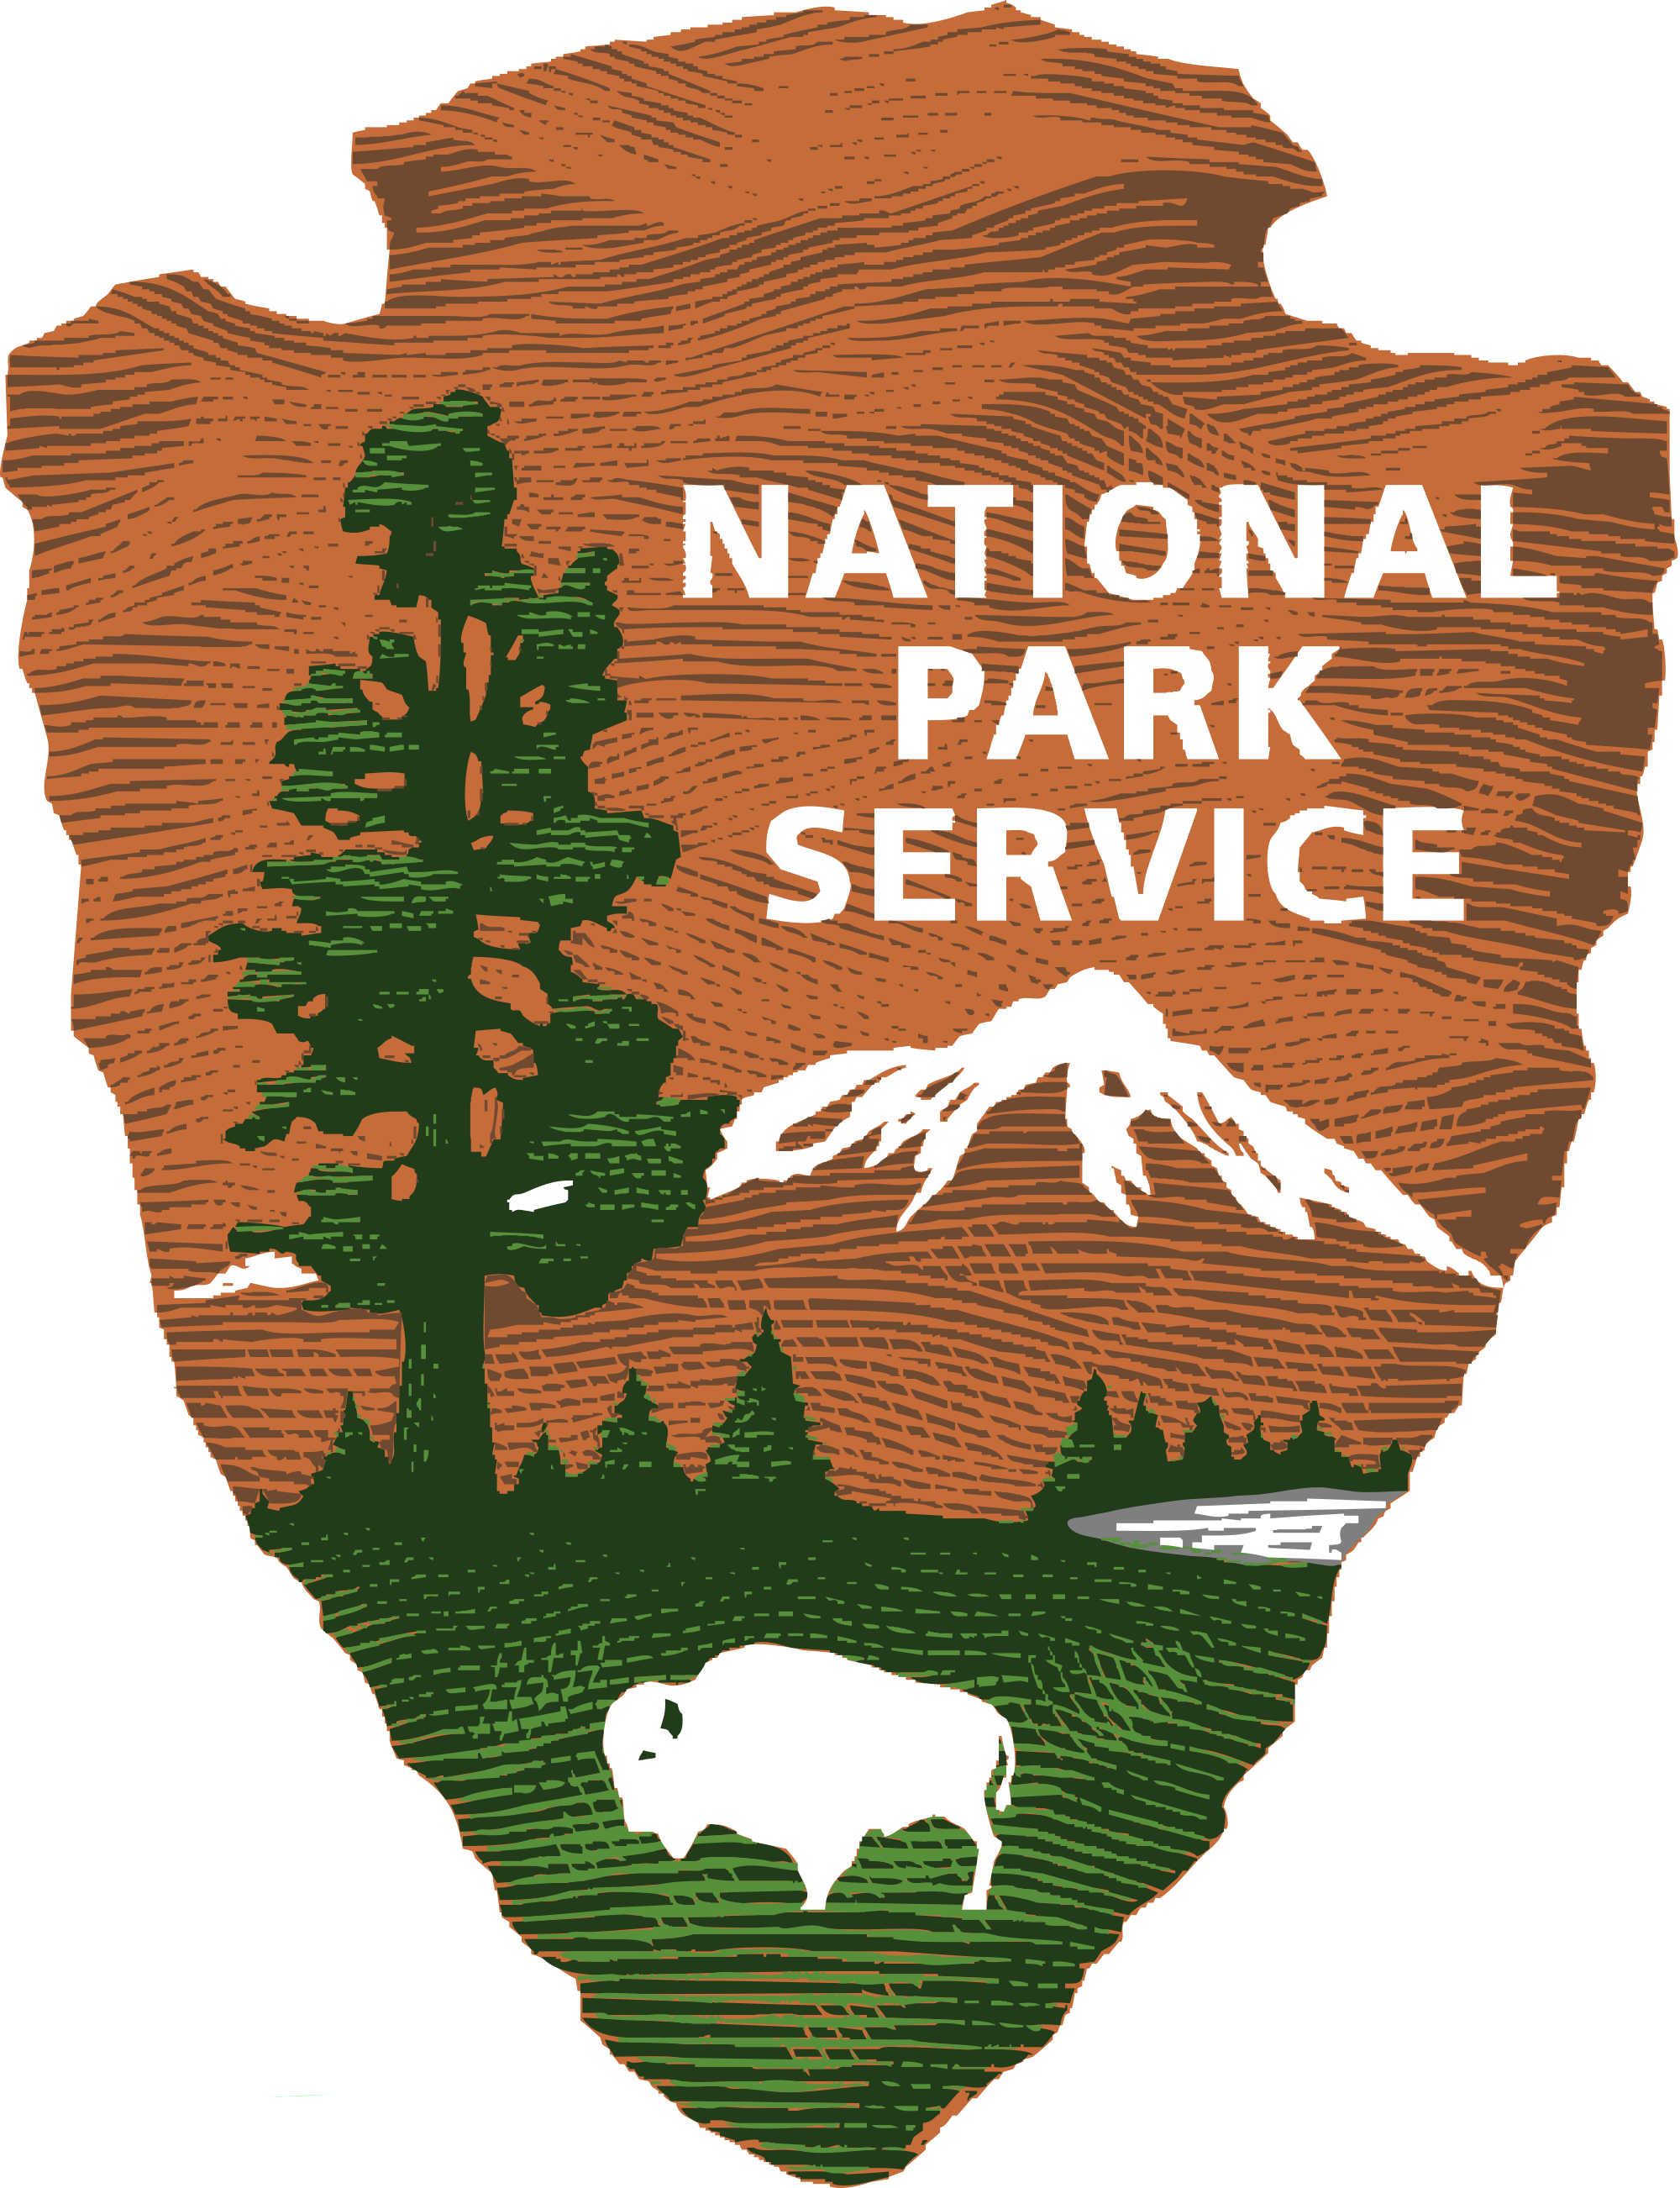 https://oceanconstructionservices.com/wp-content/uploads/2018/02/Logo_NationalParkServices.png